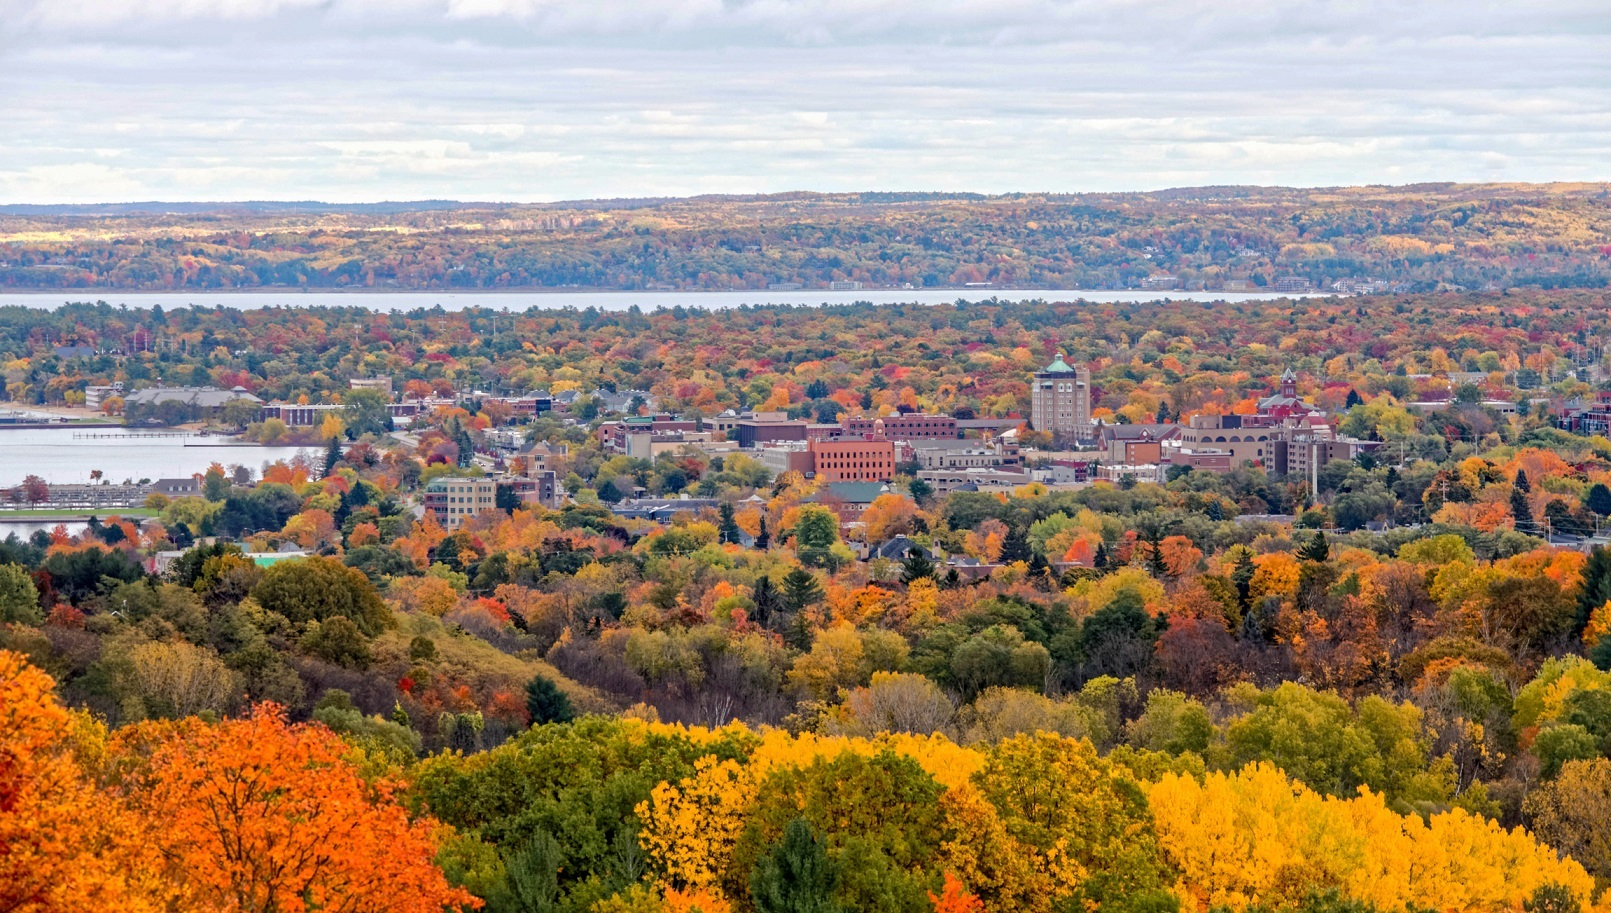 Autumn in Traverse City, Michigan